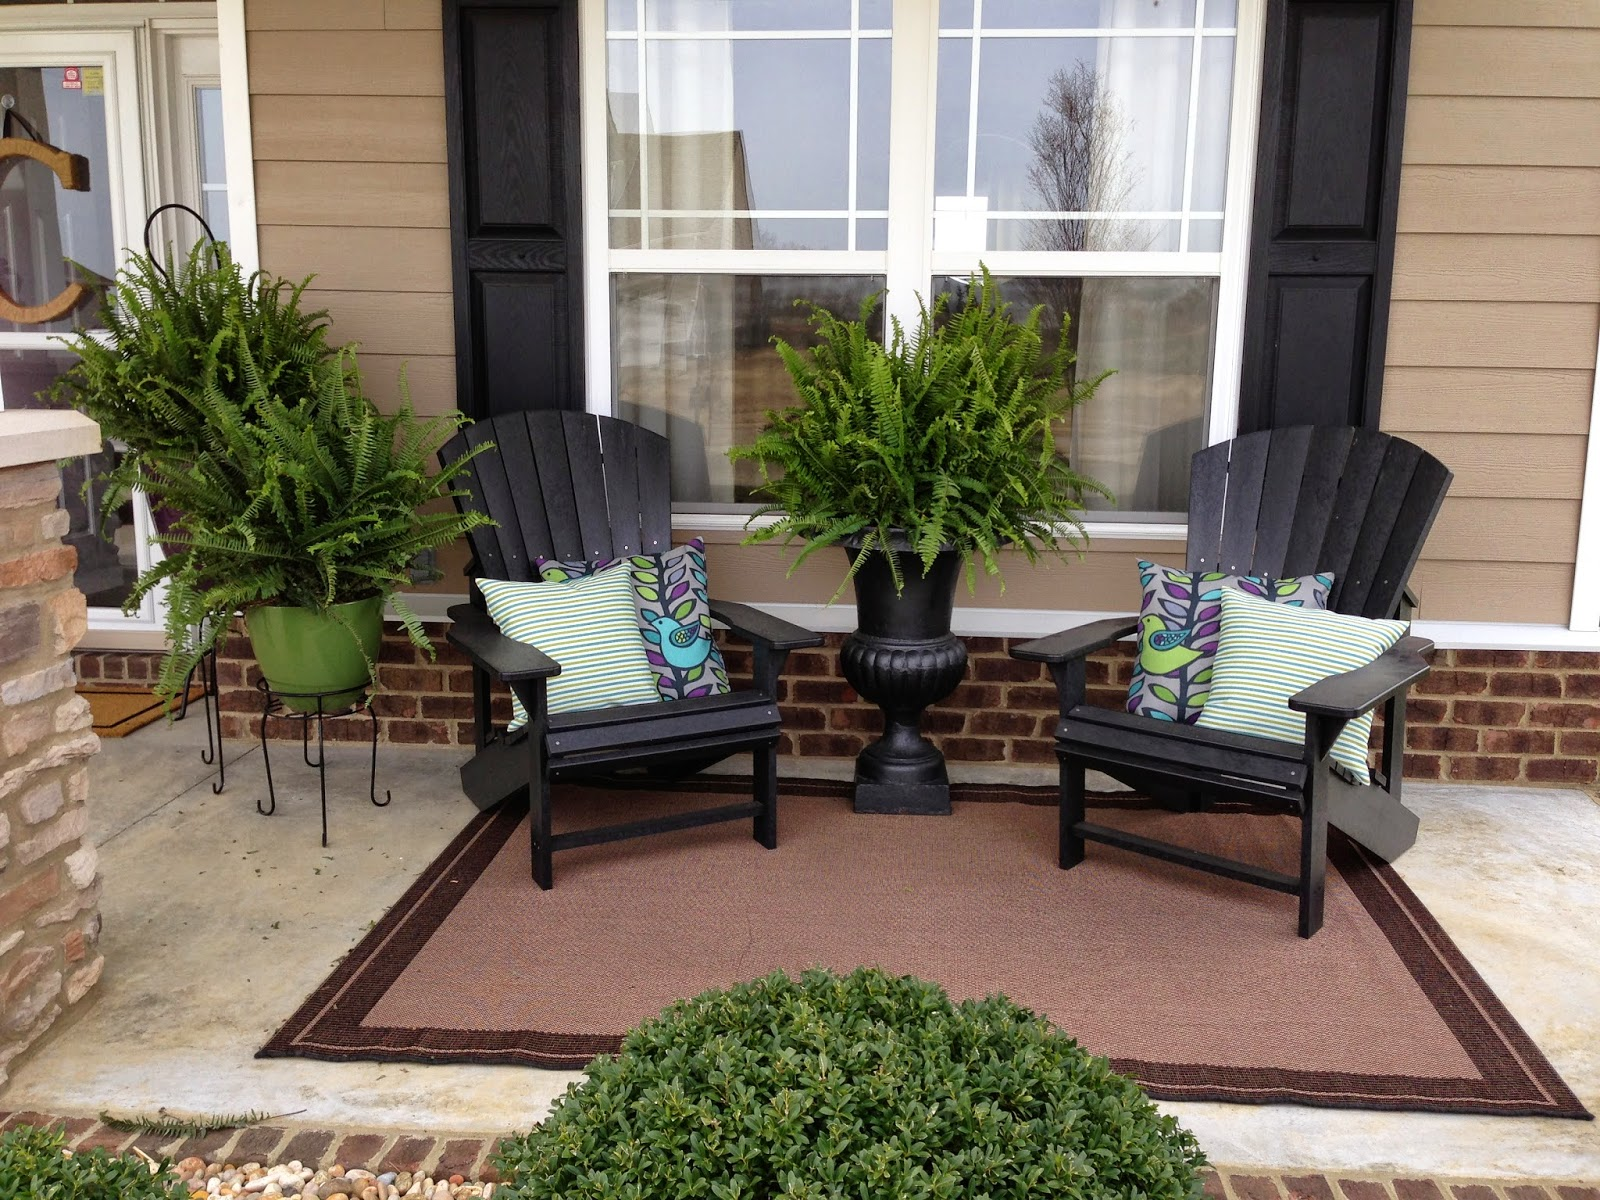 Front Porch Decorating Ideas 7 front porch decorating ideas pictures for your home ~ instant